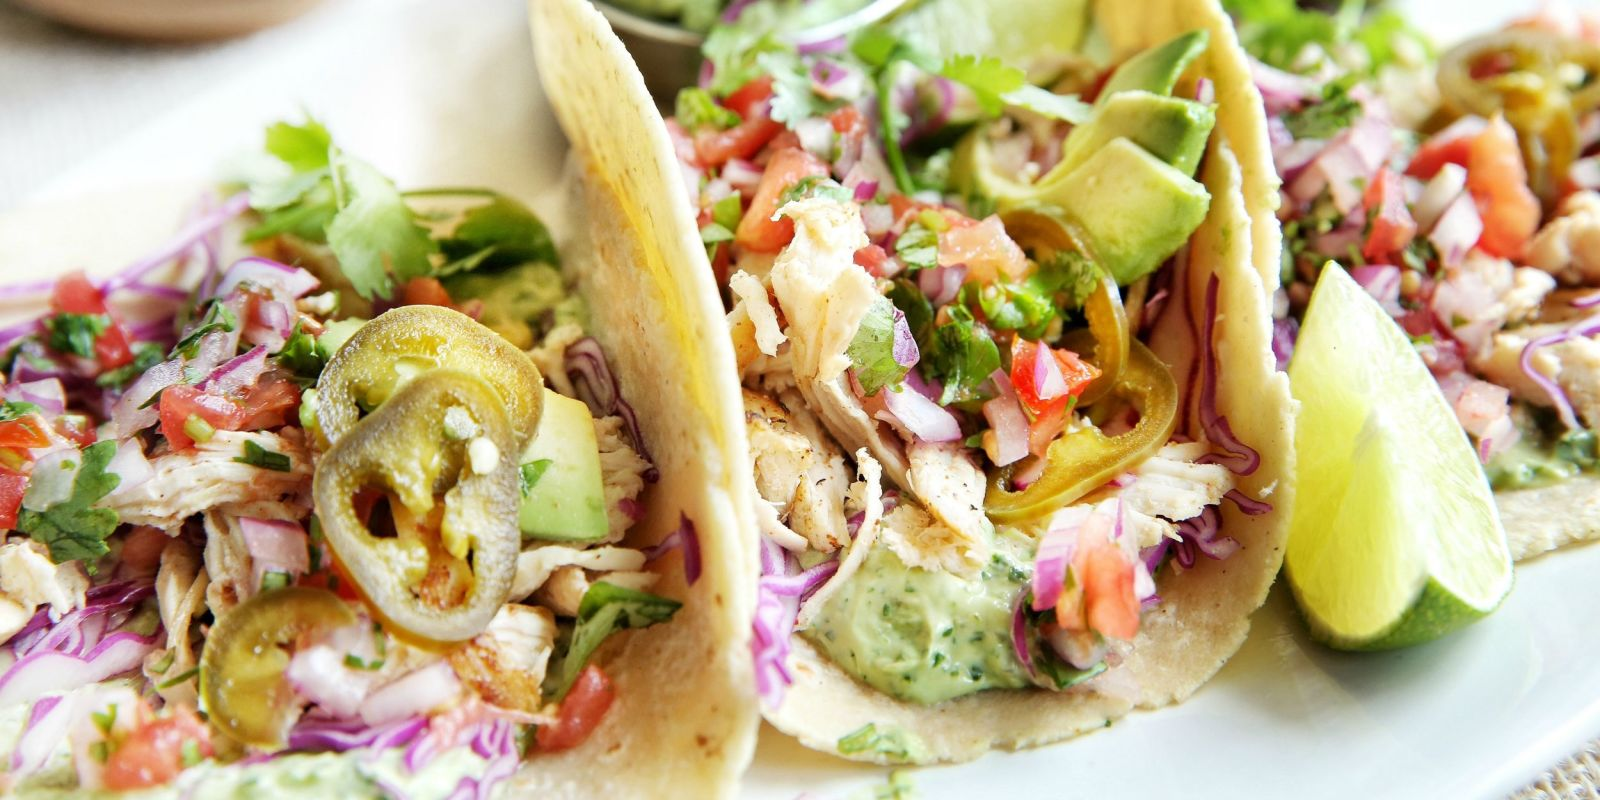 70+ Best Taco Recipes - How to Make Easy Mexican Tacos - Delish.com